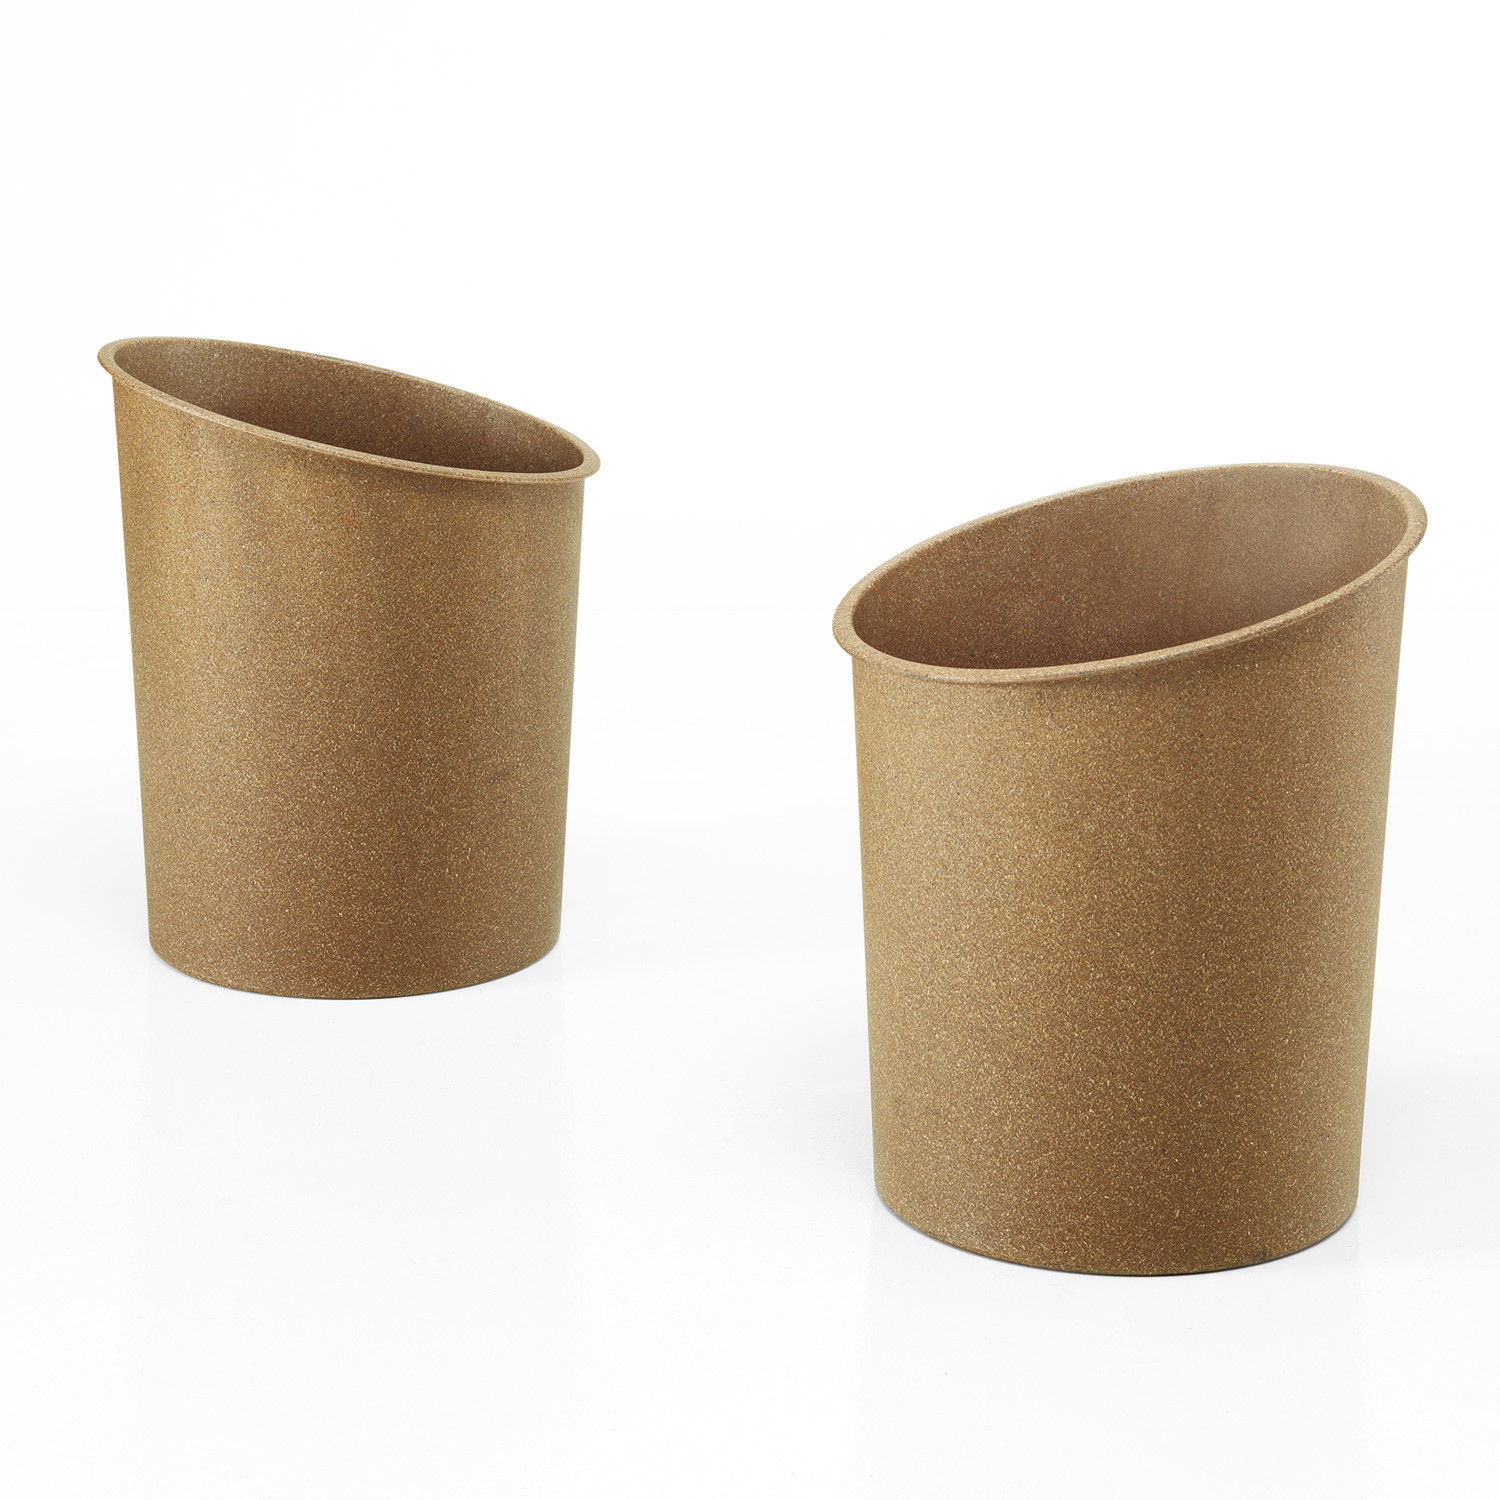 ECO Waste Paper Bins